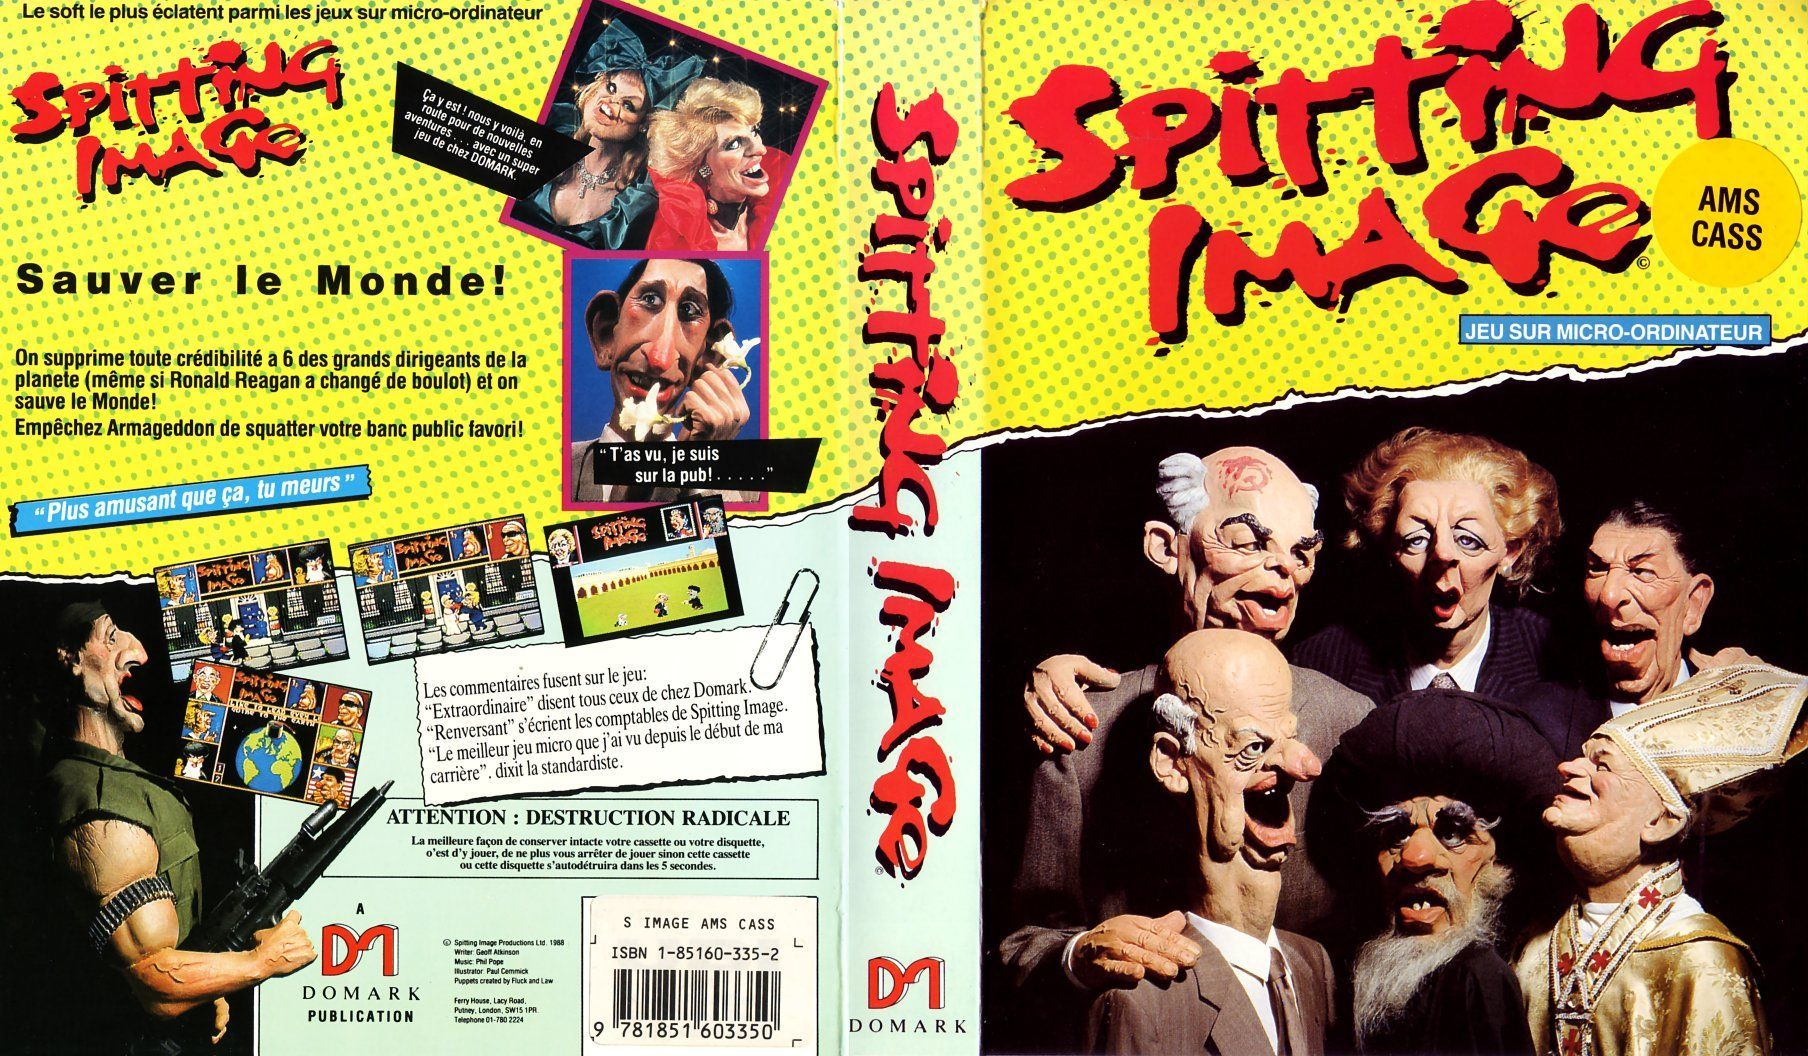 cover of the Amstrad CPC game spitting_image by Mig